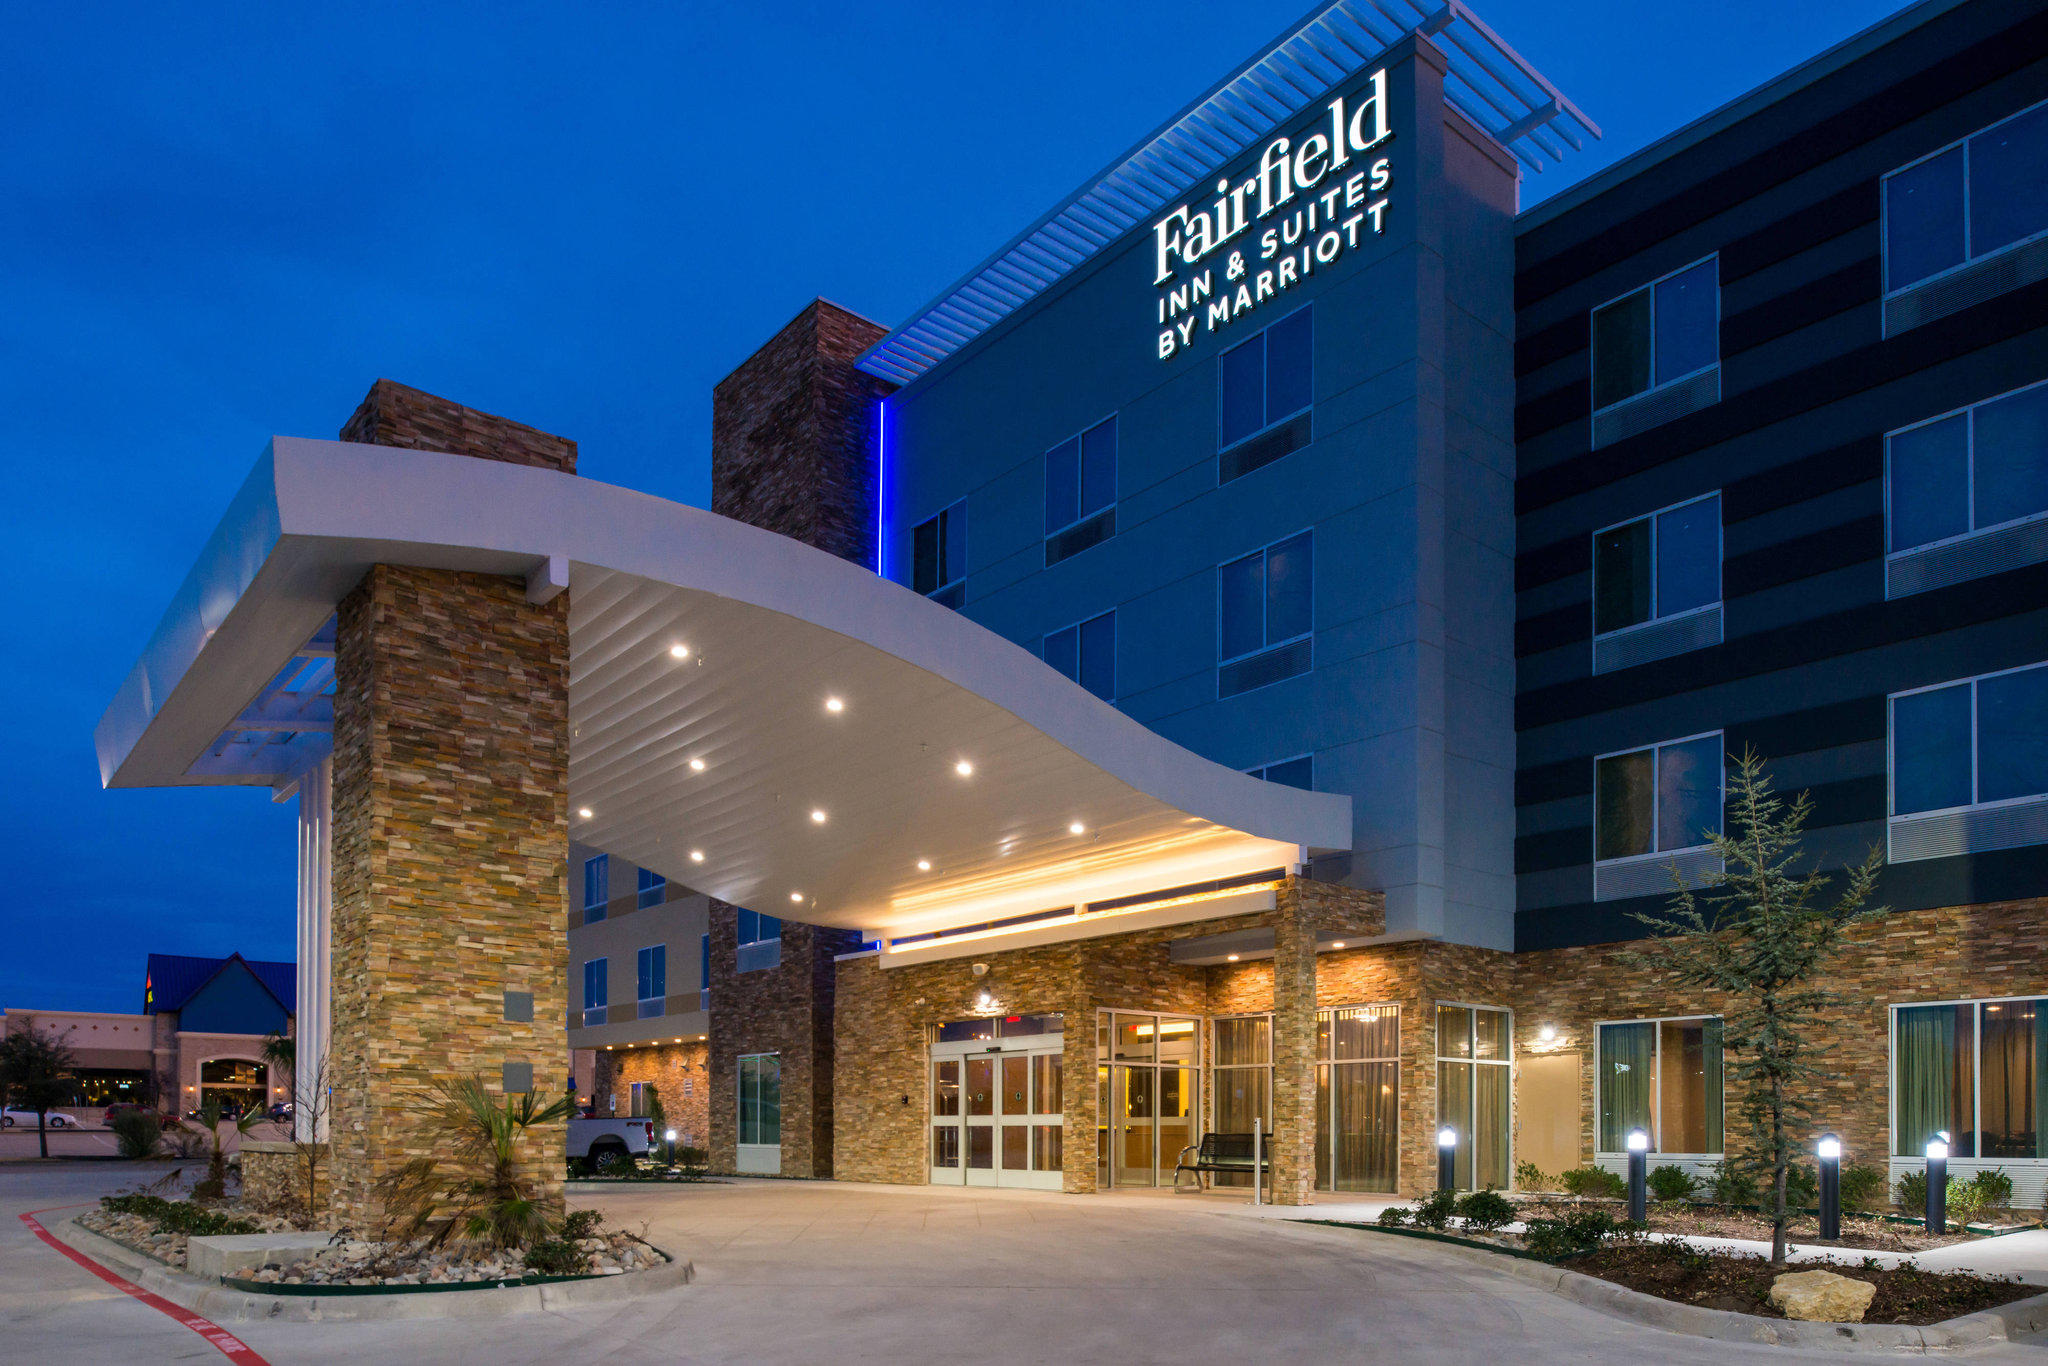 Fairfield Inn & Suites by Marriott Fort Worth Southwest at Cityview